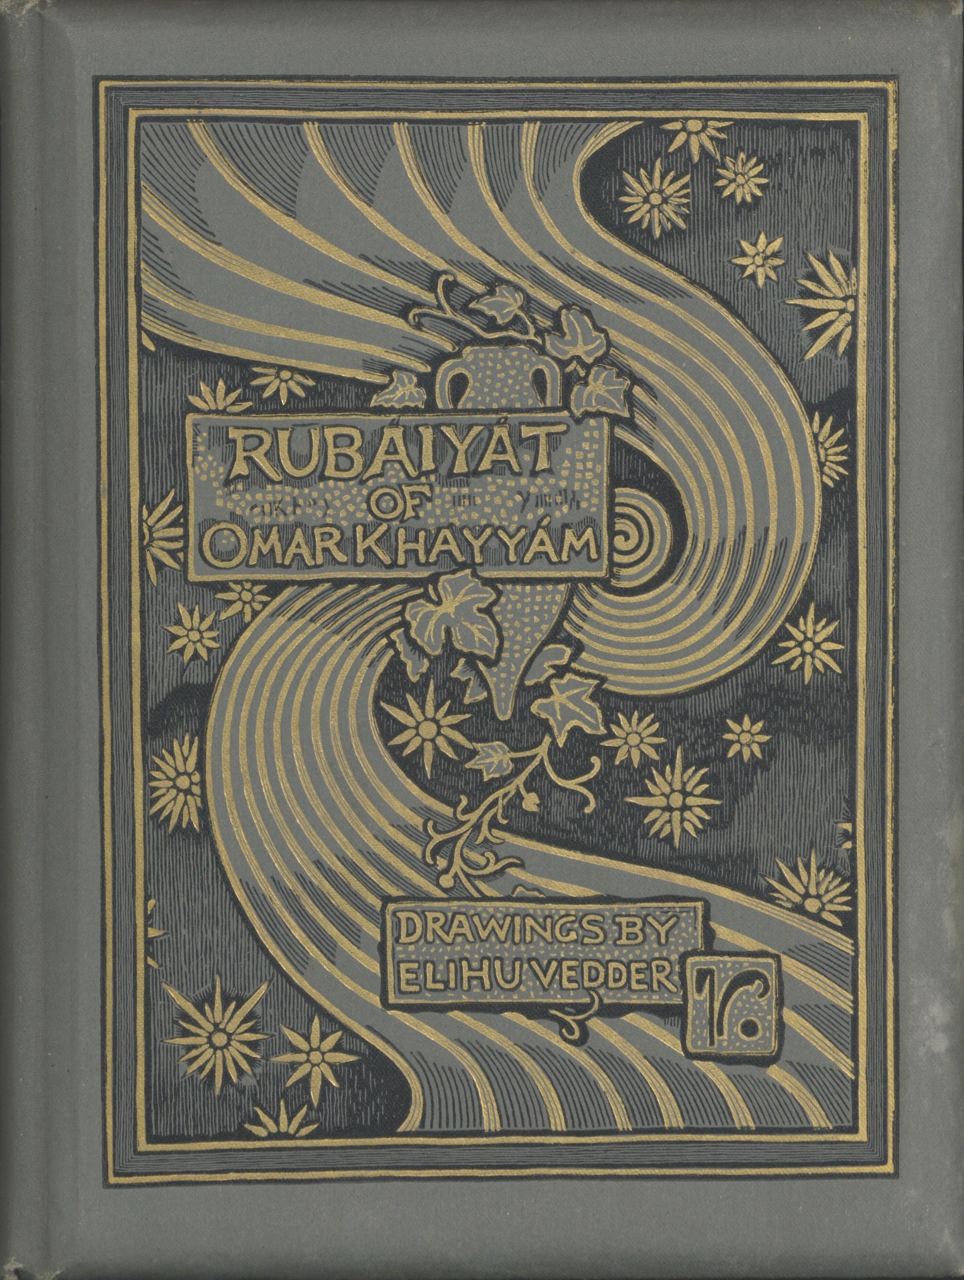 Rubaiyat of Omar Khayyam. The Astronomer Poet of Persia. Rendered into English Verse by Edward Fitzgerald, with Accompaniment of Drawings by Elihu Vedder. Edward Fitzgerald.